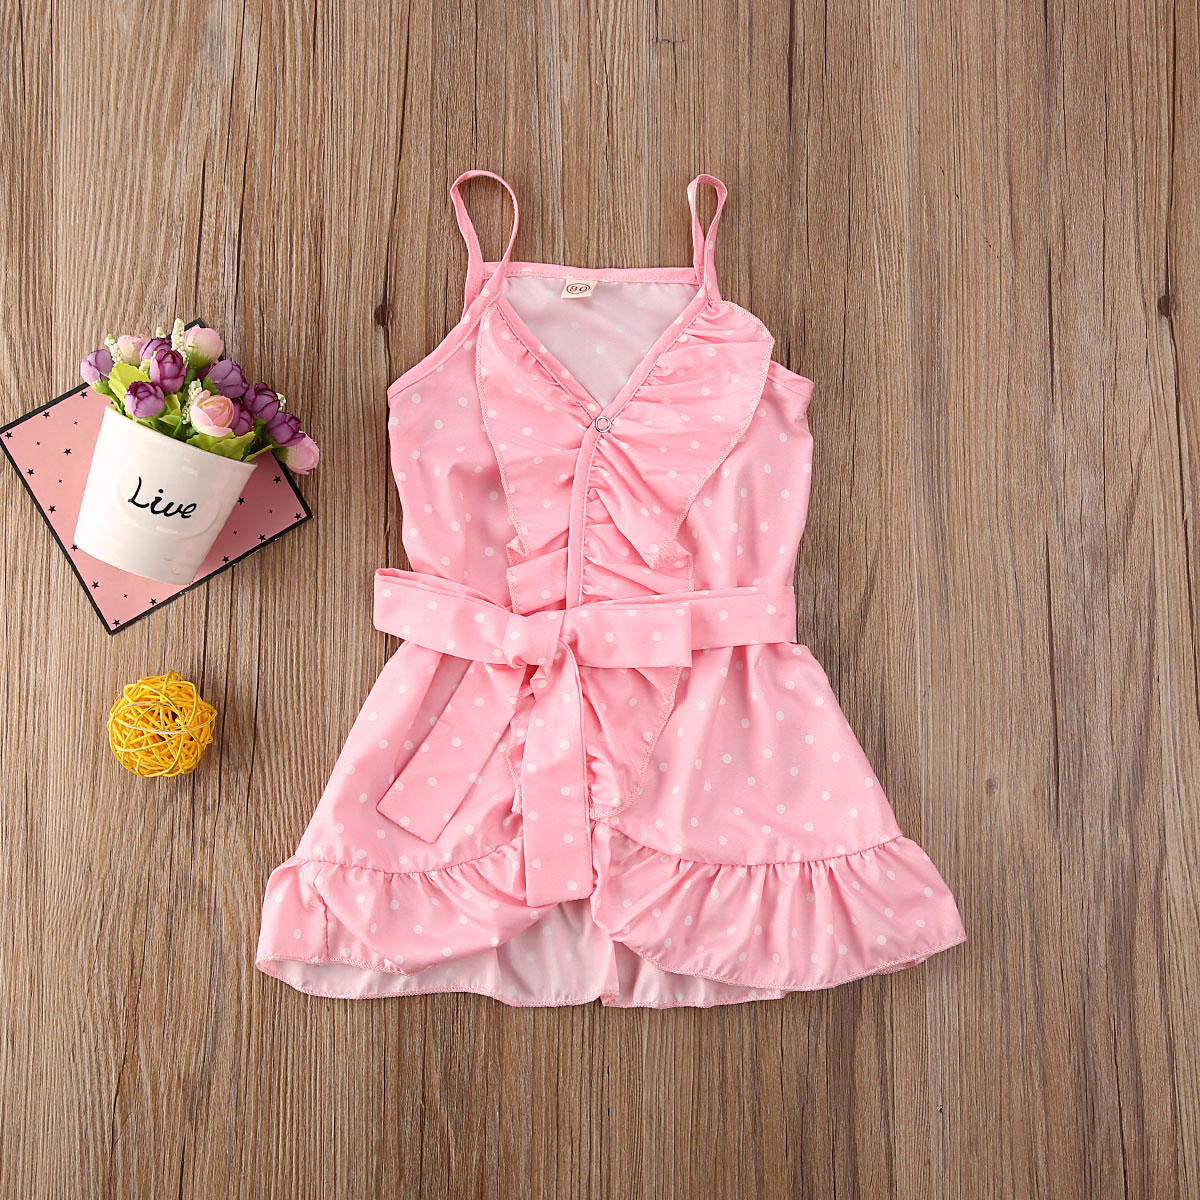 Pudcoco Toddler Baby Girl Clothes Polka Dot Flower Ruffle Sleeveless Strap Dress Summer Outfit Clothes